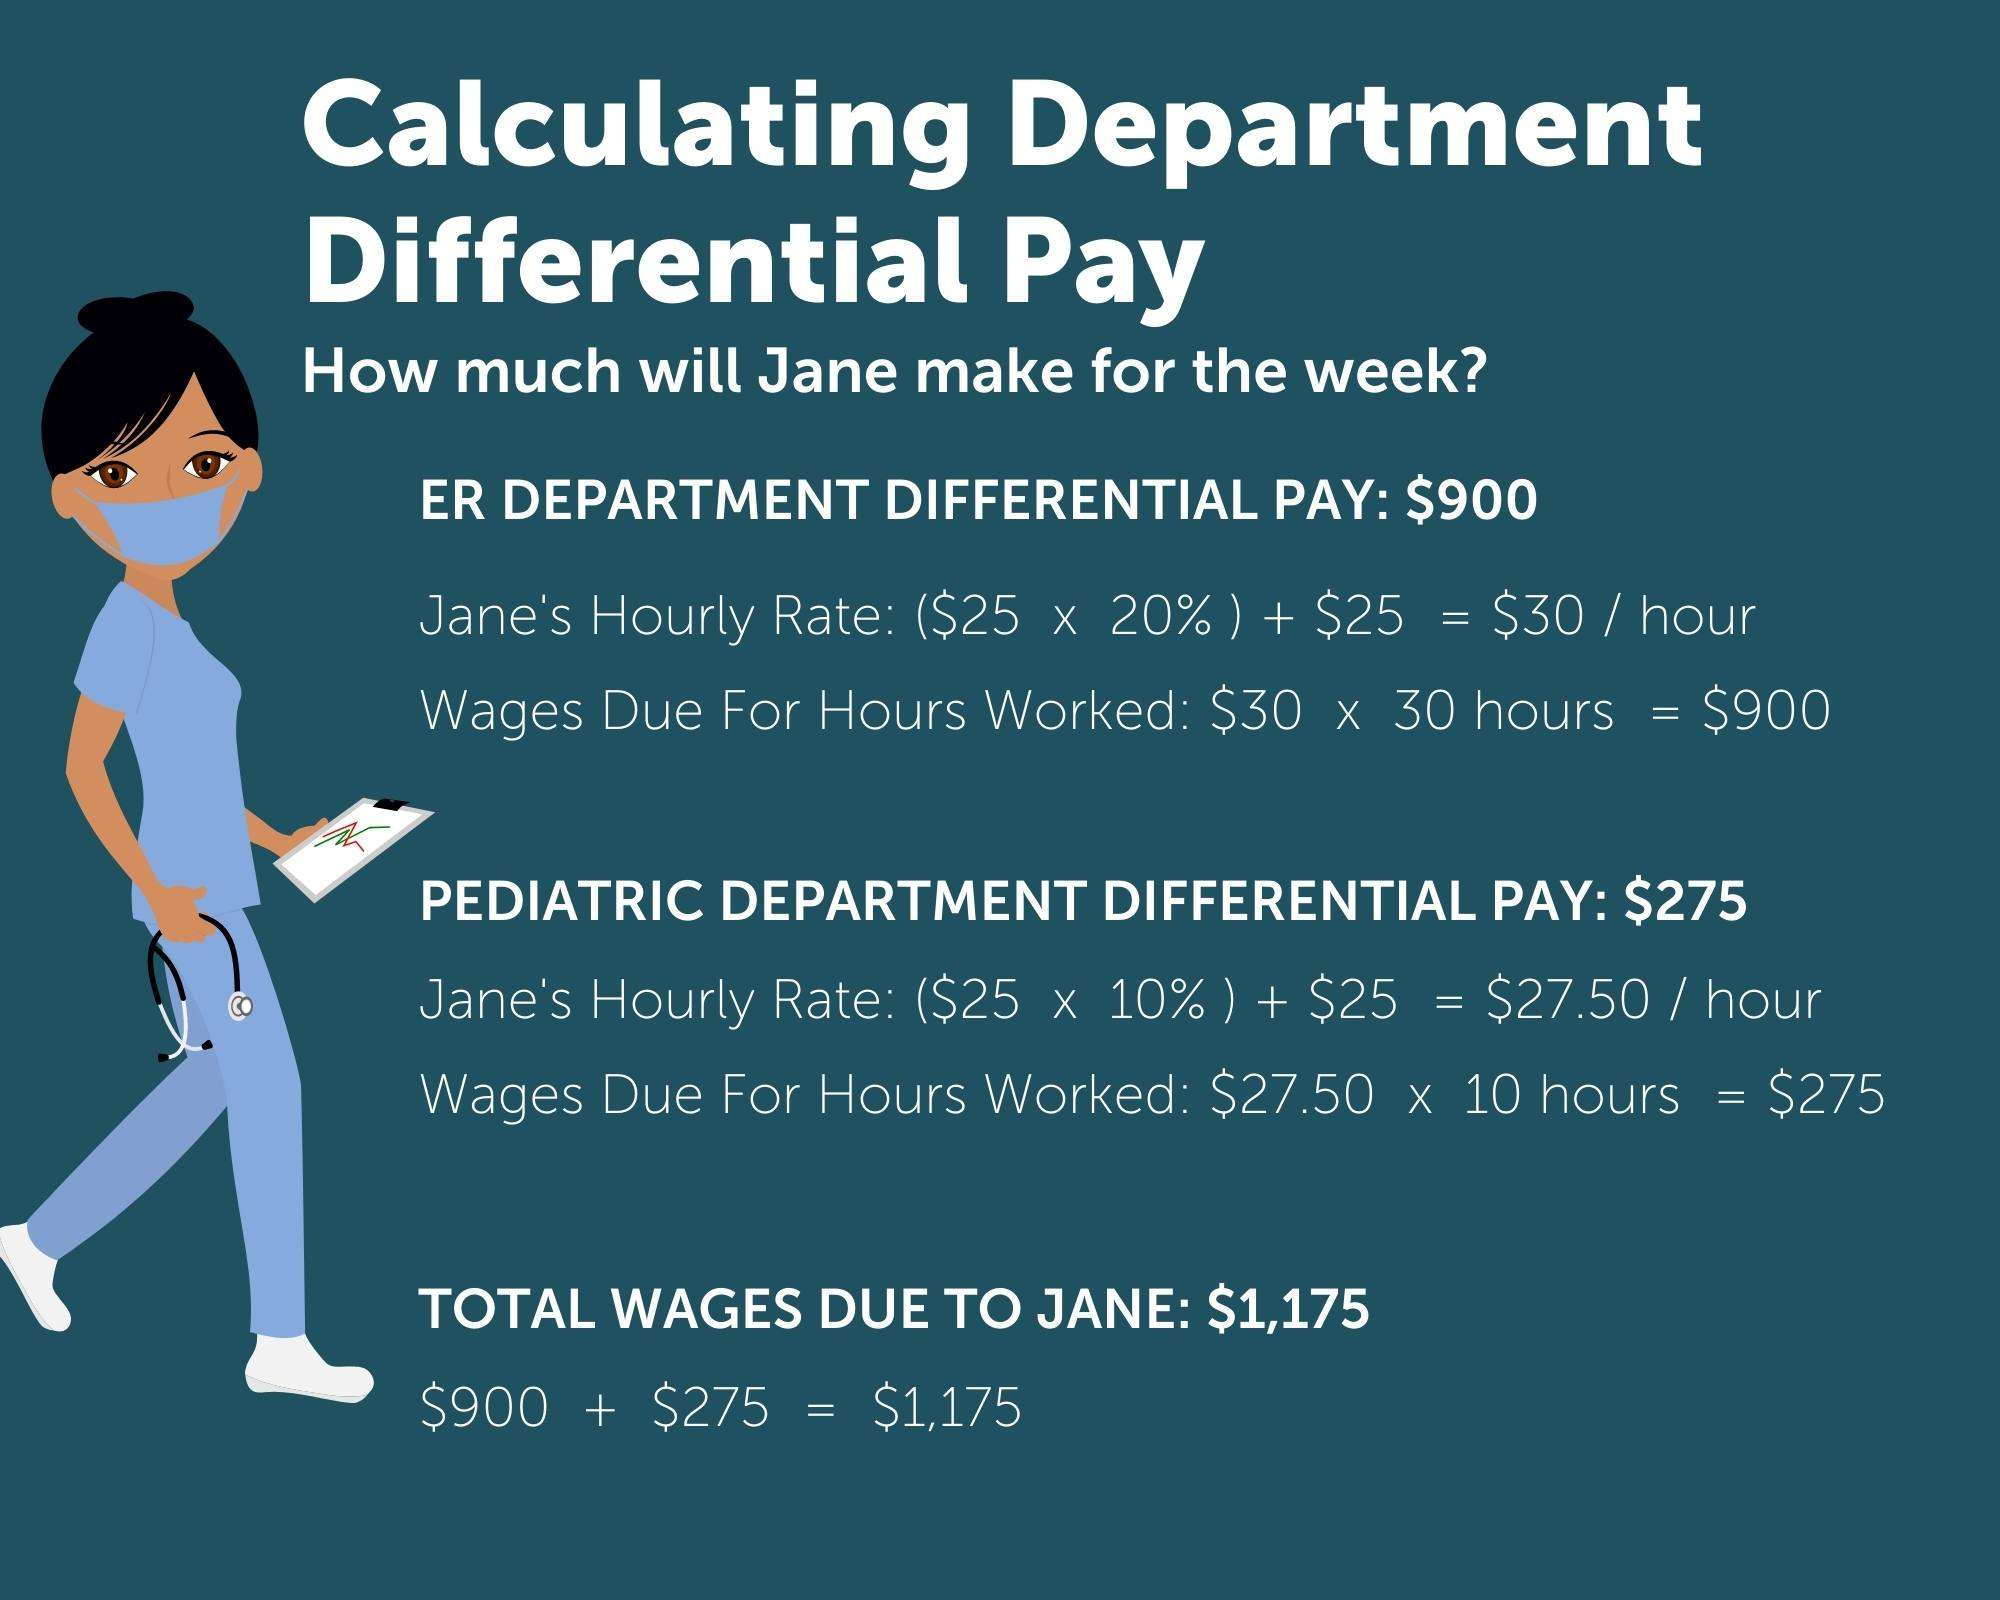 Calculating Department Differential Pay